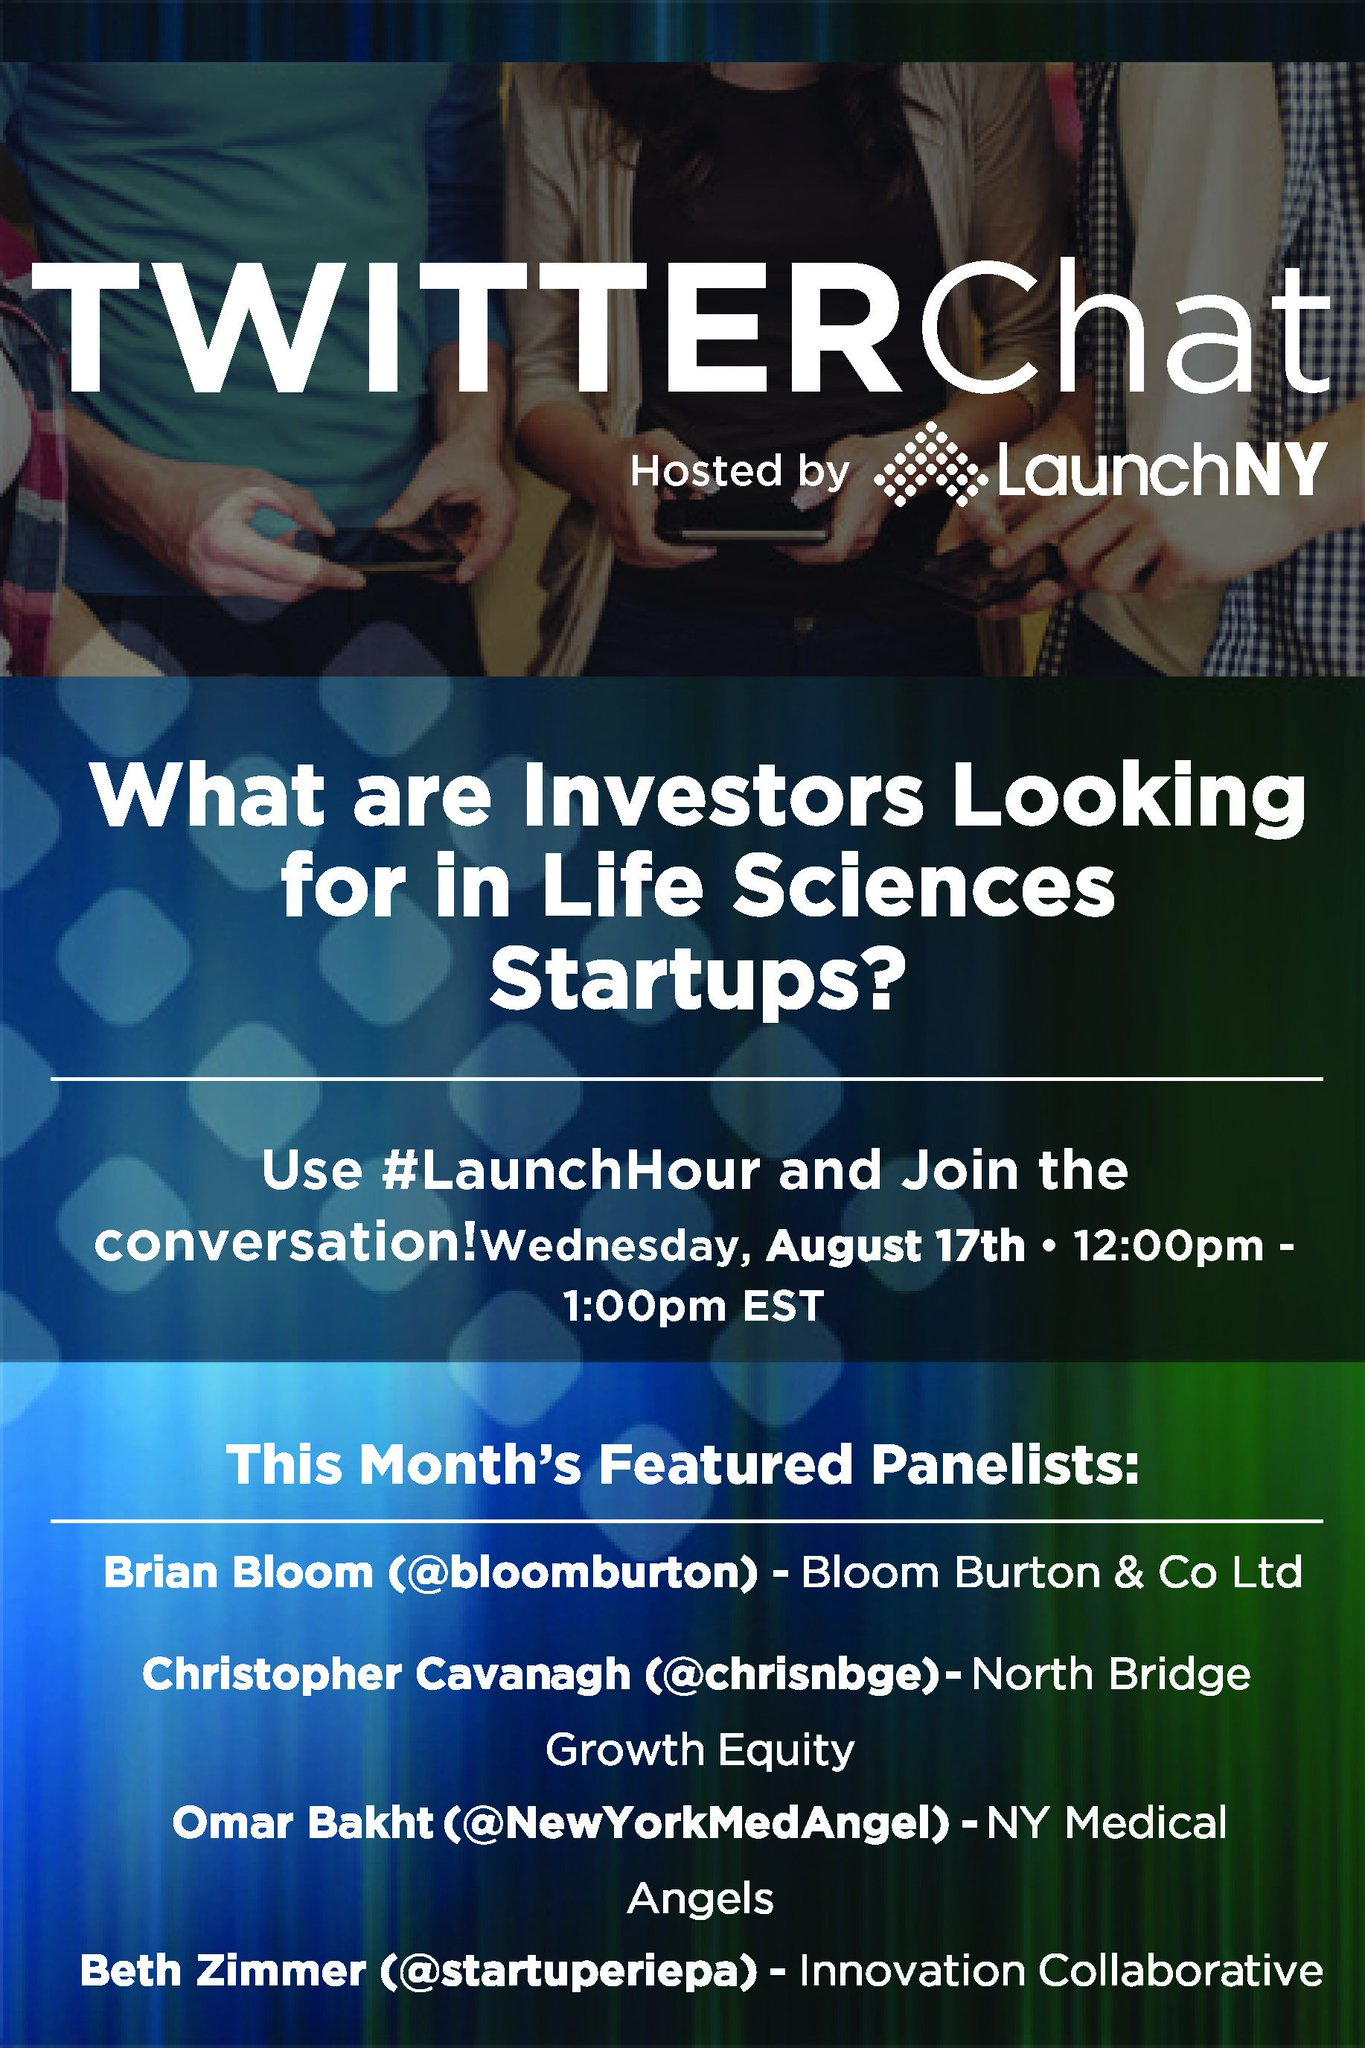 Who's joining us tomorrow for #LaunchHour? Sure to be a great chat for #LifeSciences #Startups https://t.co/5b6S9sgJfI